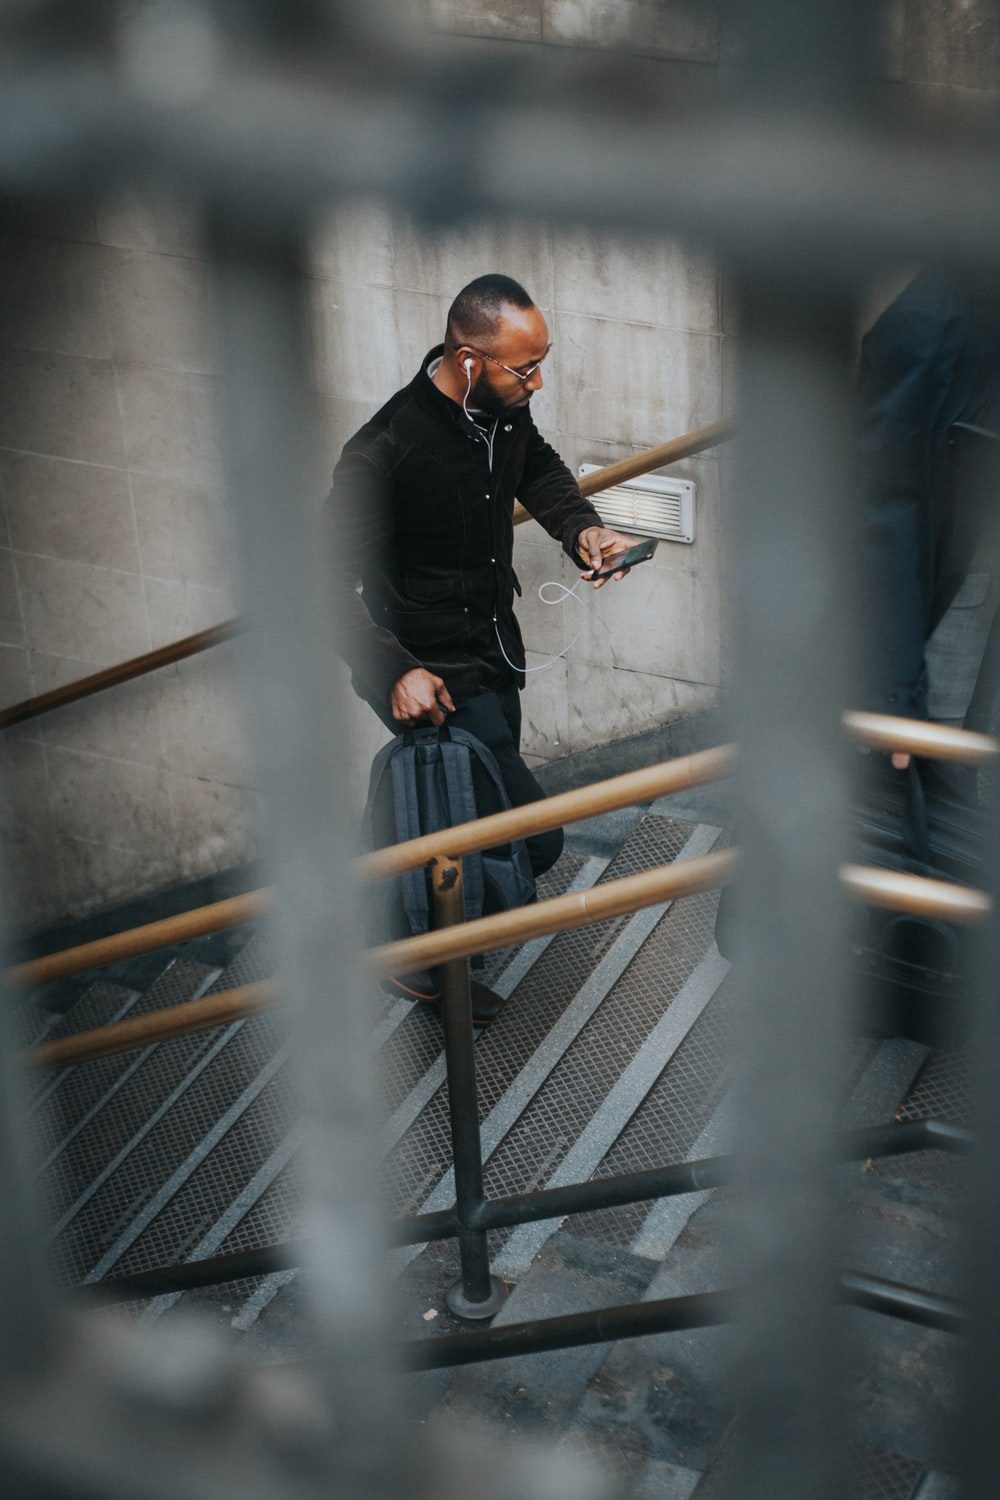 man on stairs while using smartphone and carrying backpack